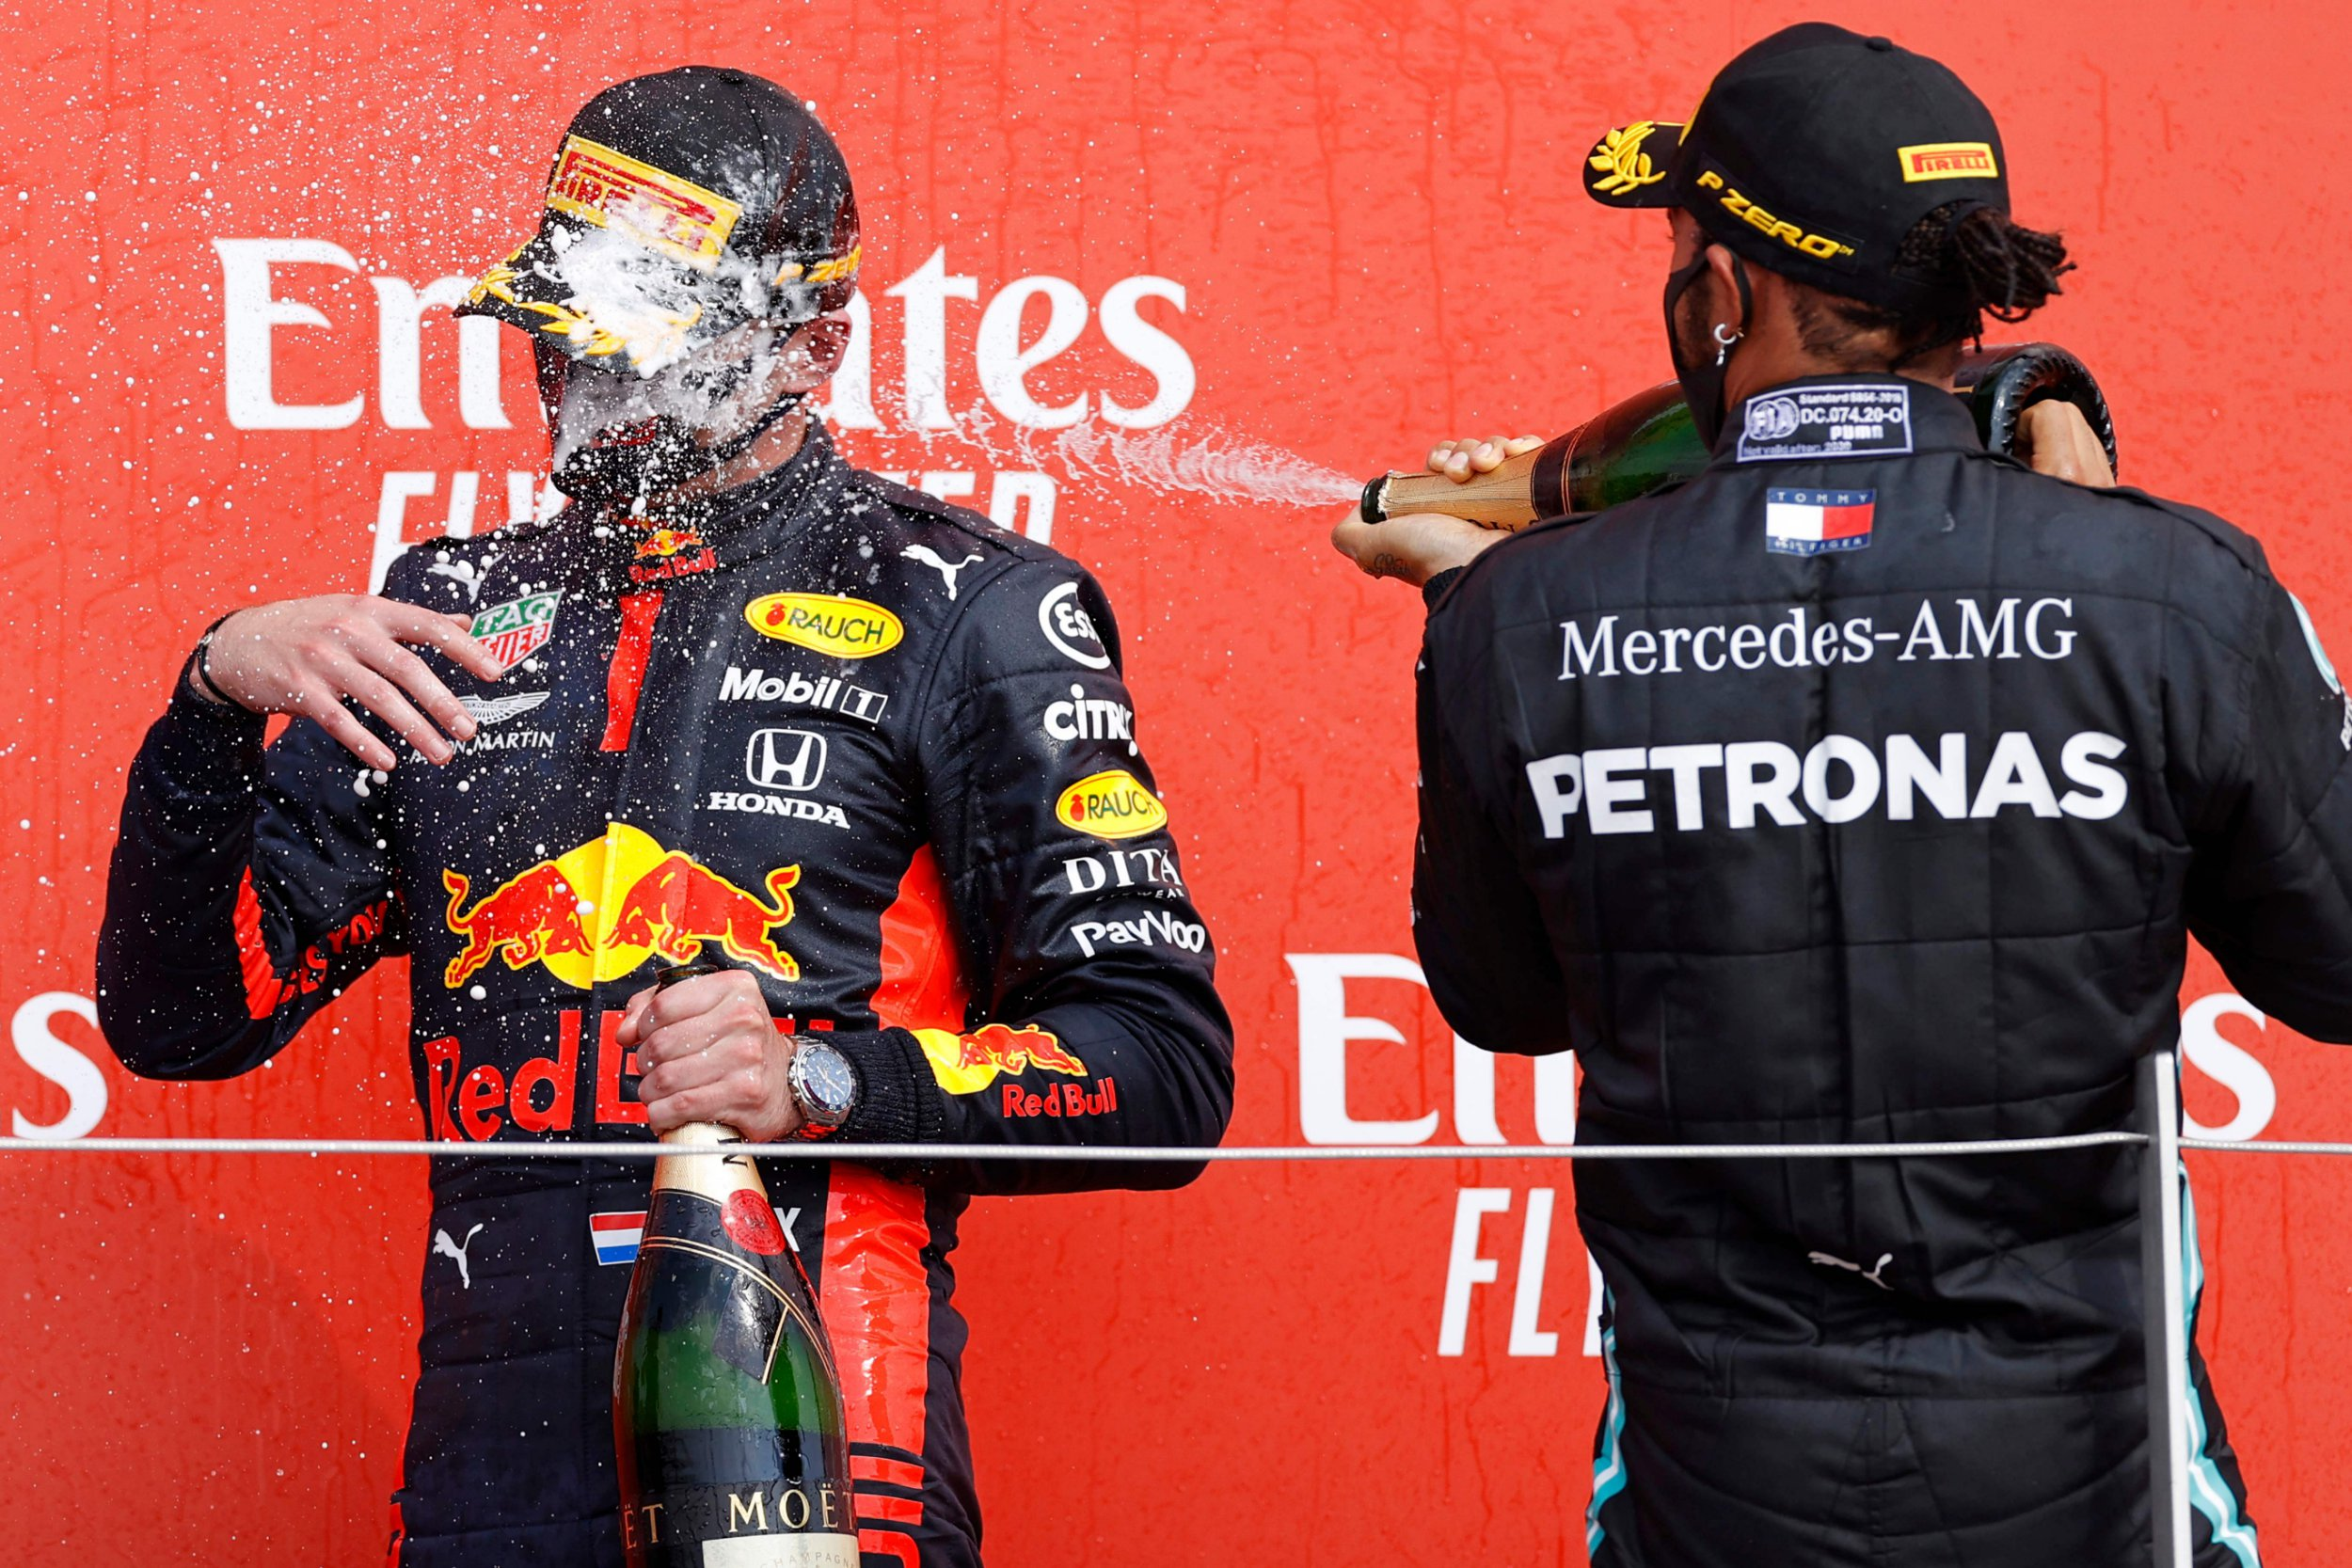 """Max Verstappen to Mercedes: Speculation heats up as Red Bull driver quips he doesn't """"know what Lewis is going to do"""""""